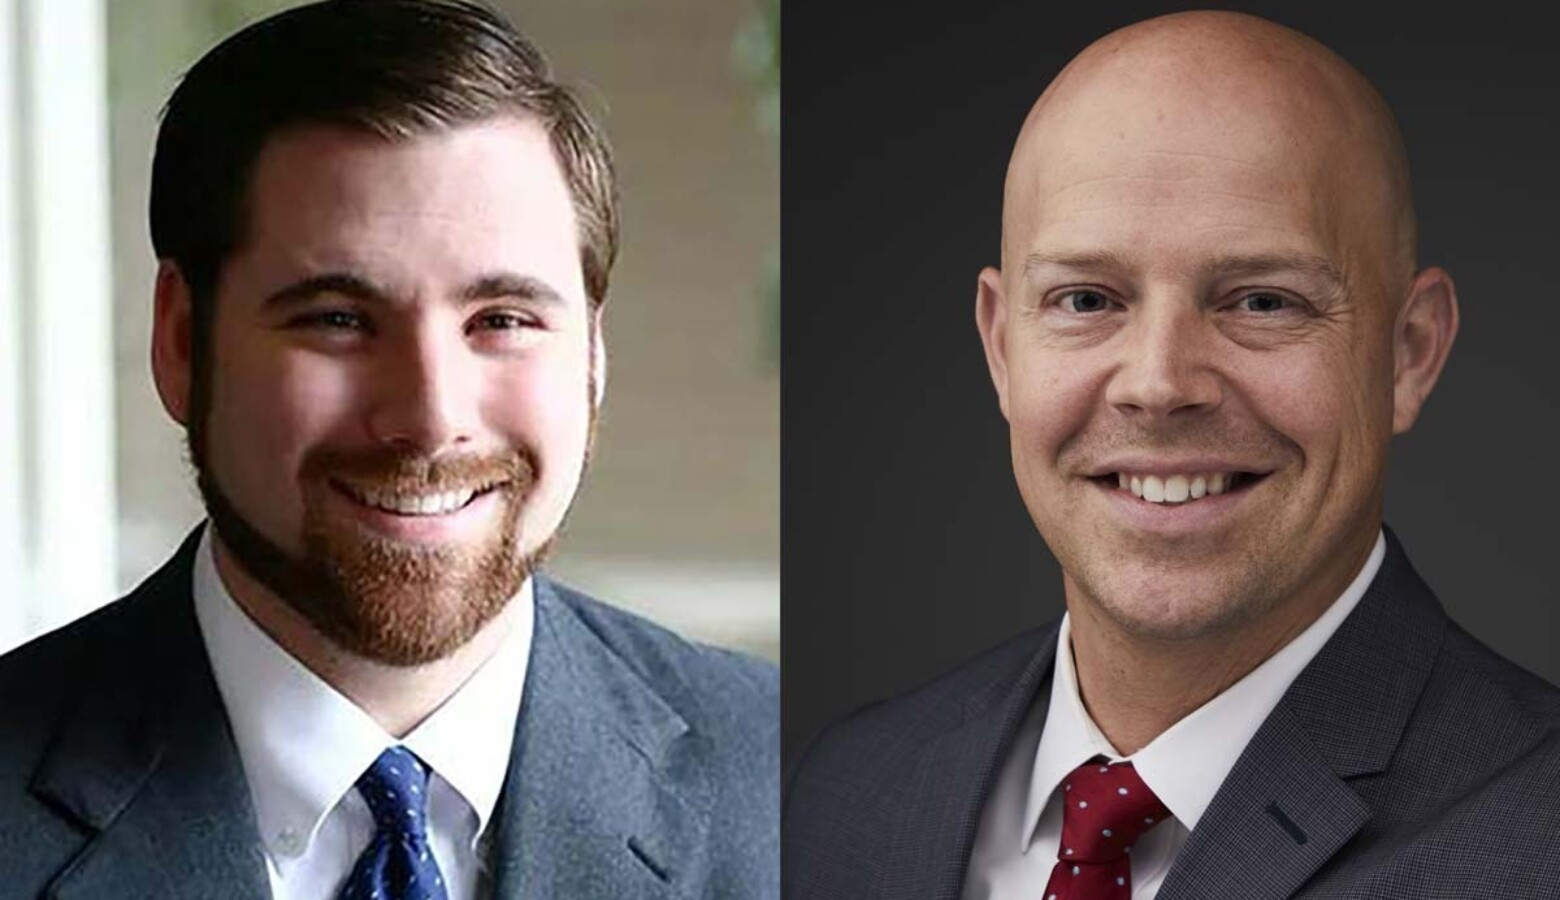 Decatur County Prosecutor Nate Harter, left, joined the Republican race for the Attorney General nomination as former Indiana Department of Revenue Commissioner Adam Krupp, right, dropped out and endorsed Harter. (Courtesy of Indiana Prosecuting Attorneys